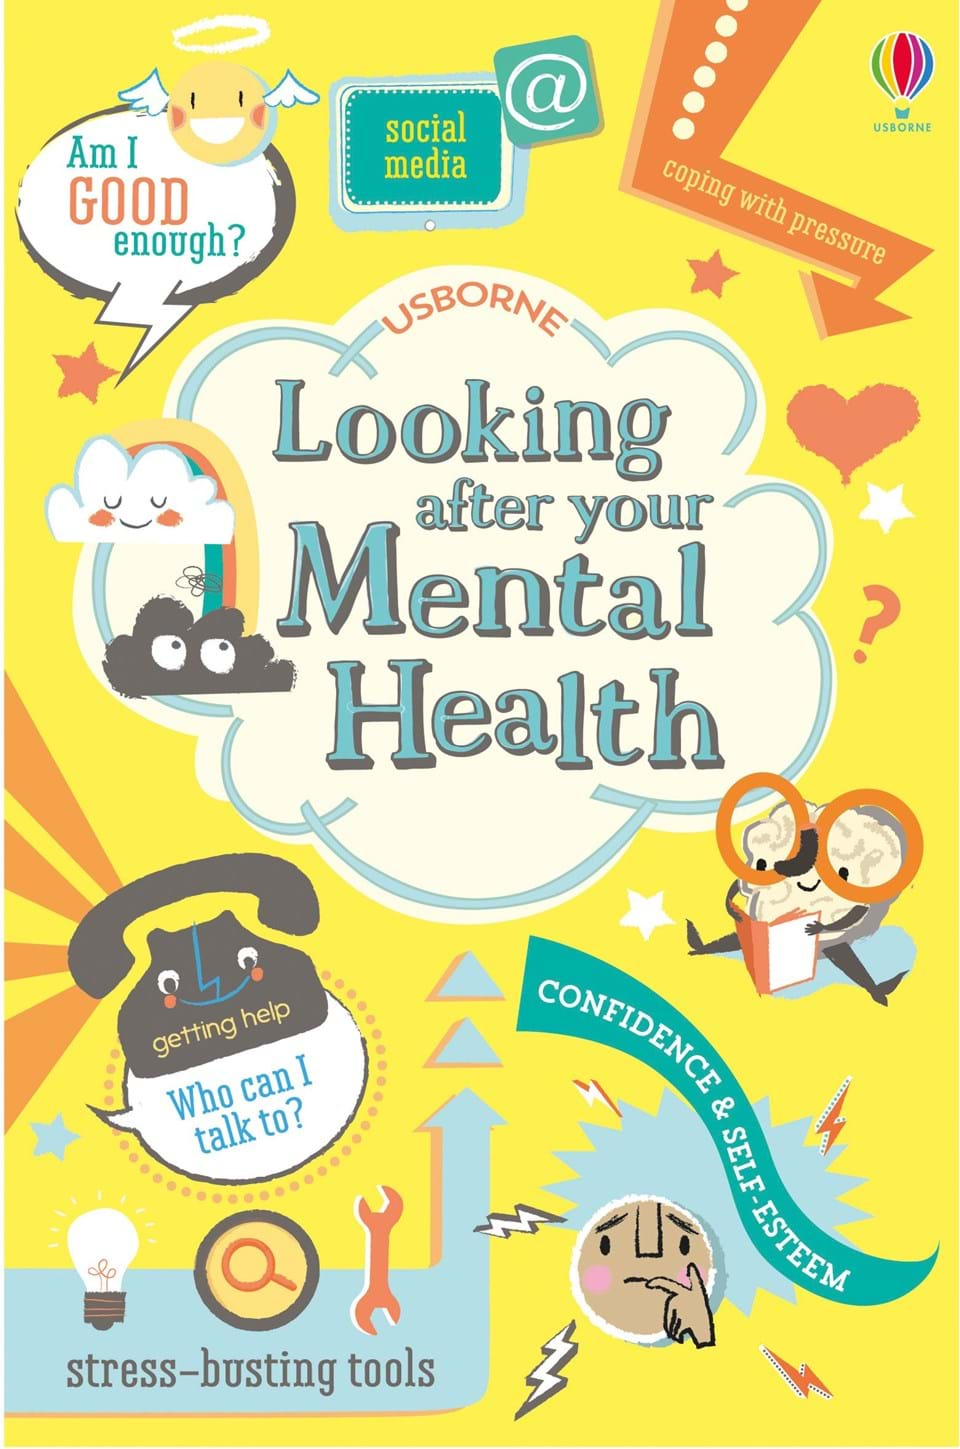 Looking After Your Mental Health Image